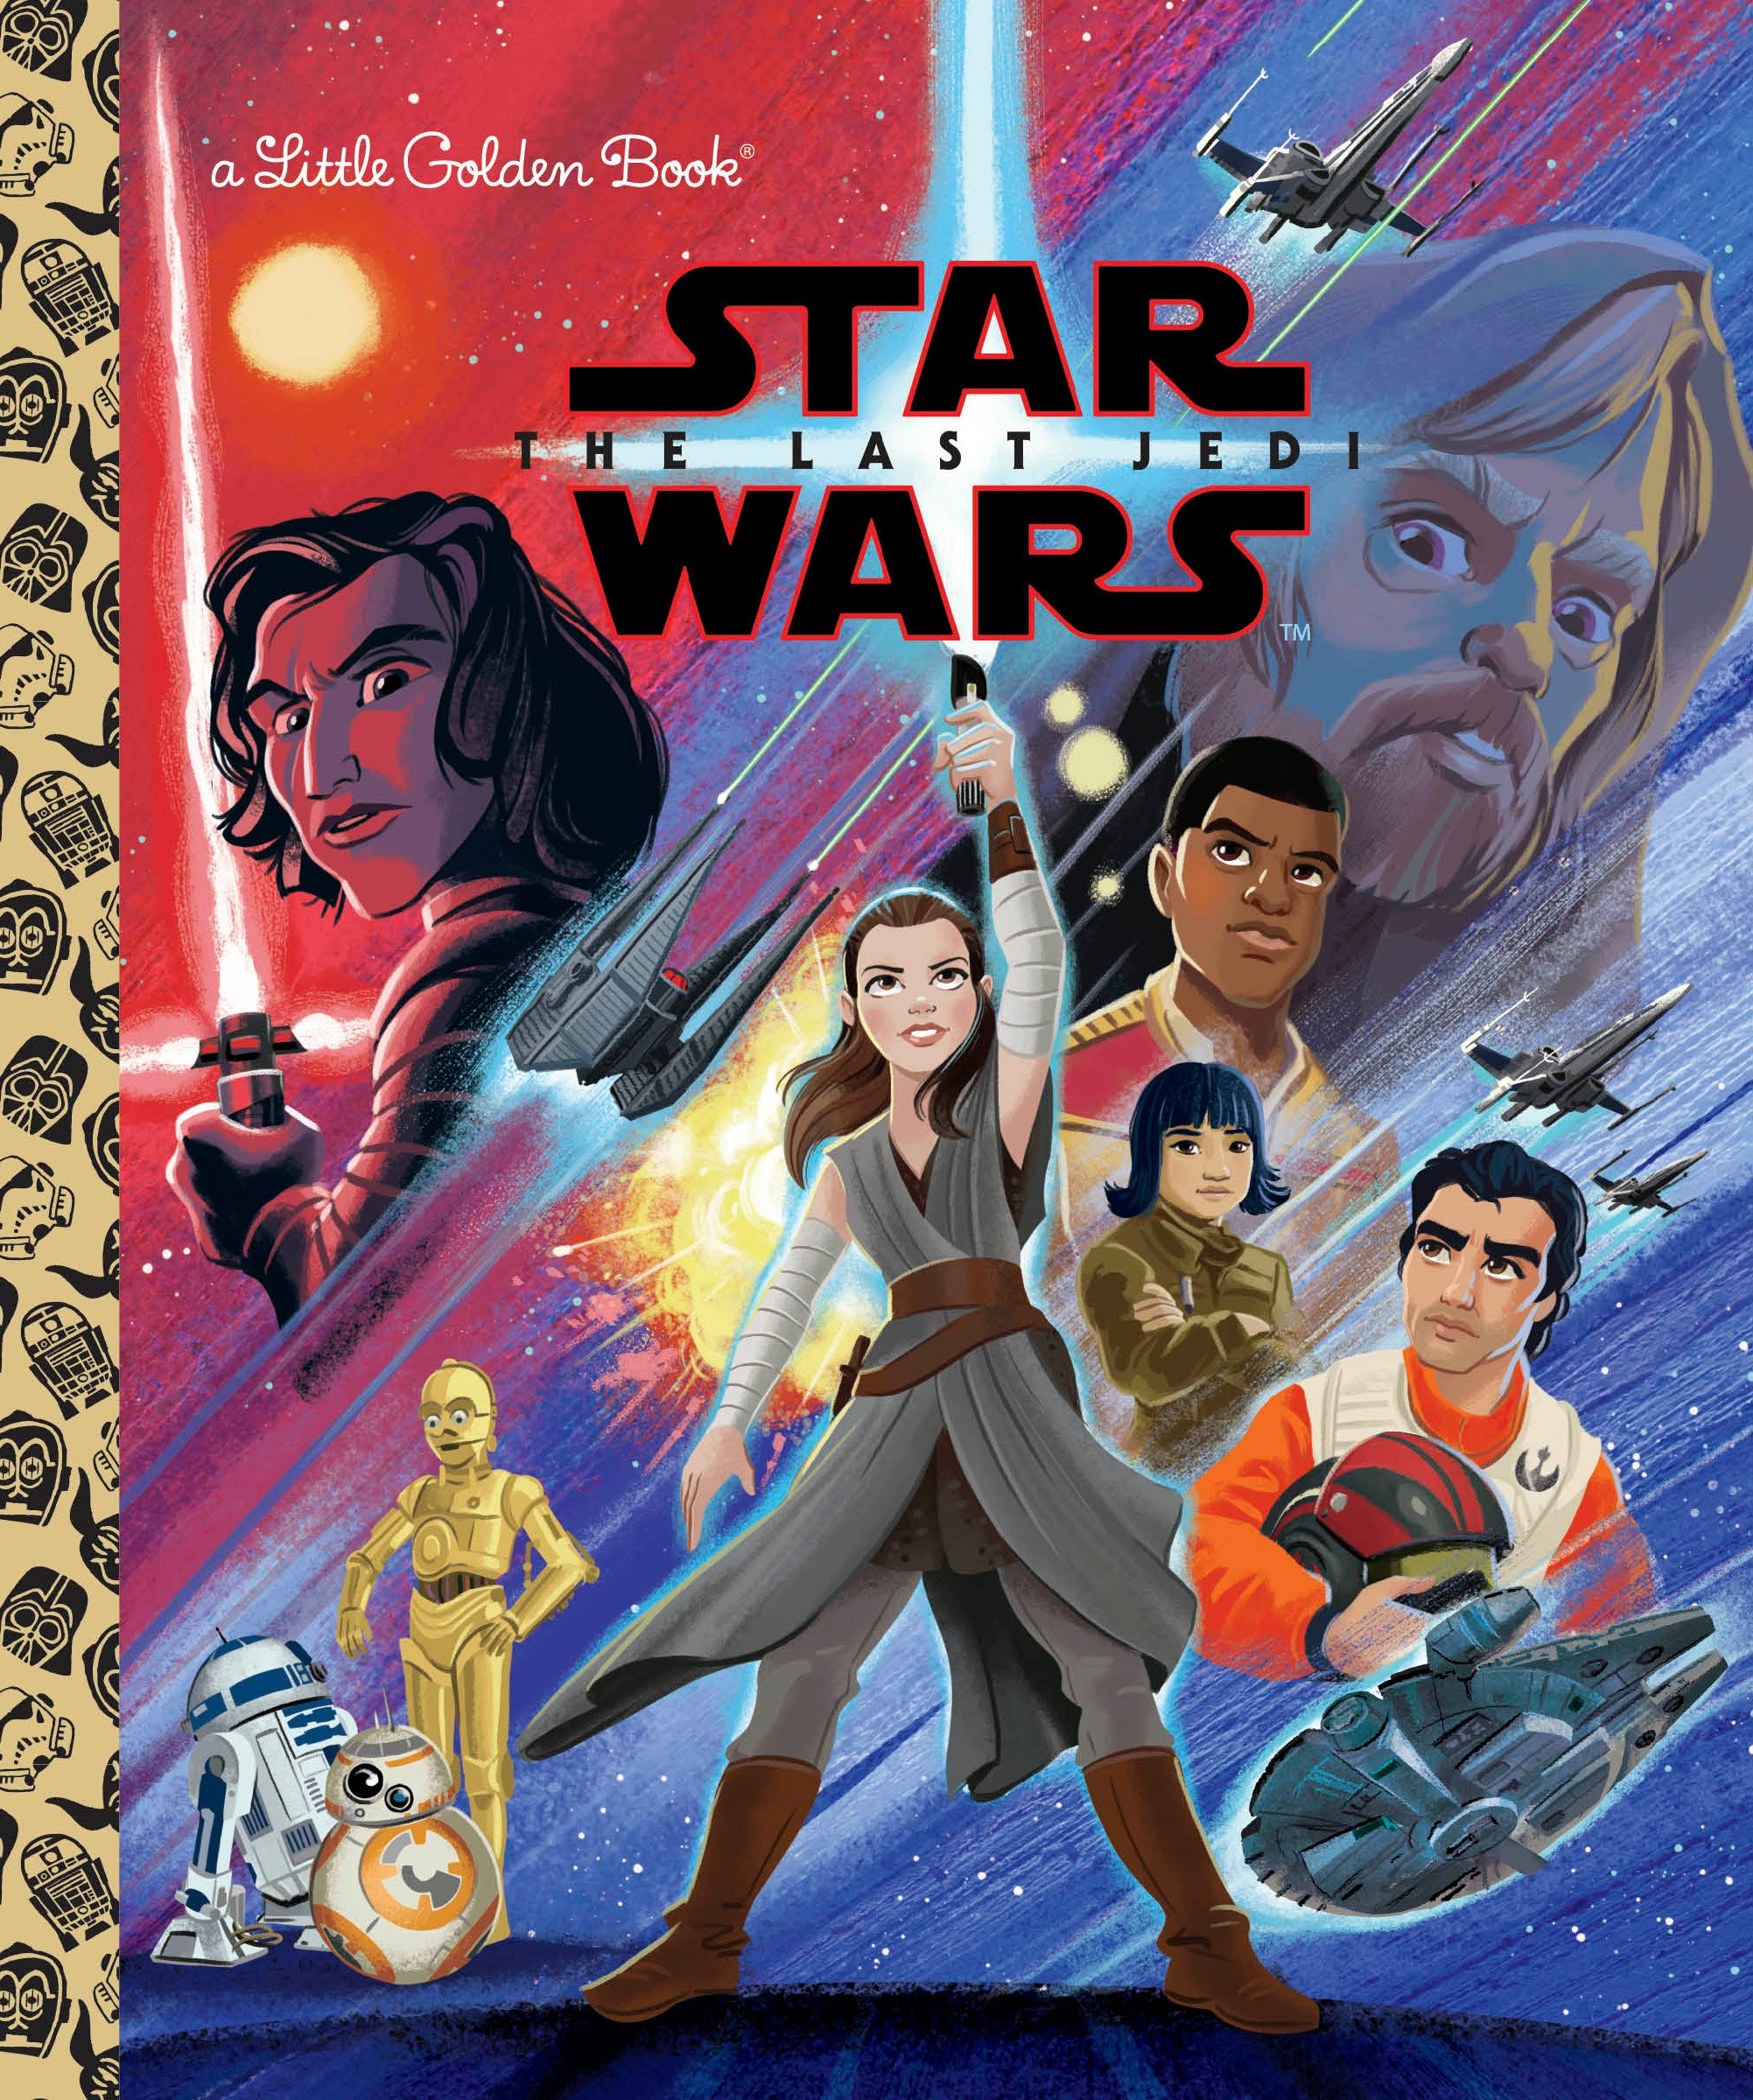 Star Wars: The Last Jedi (Little Golden Book)